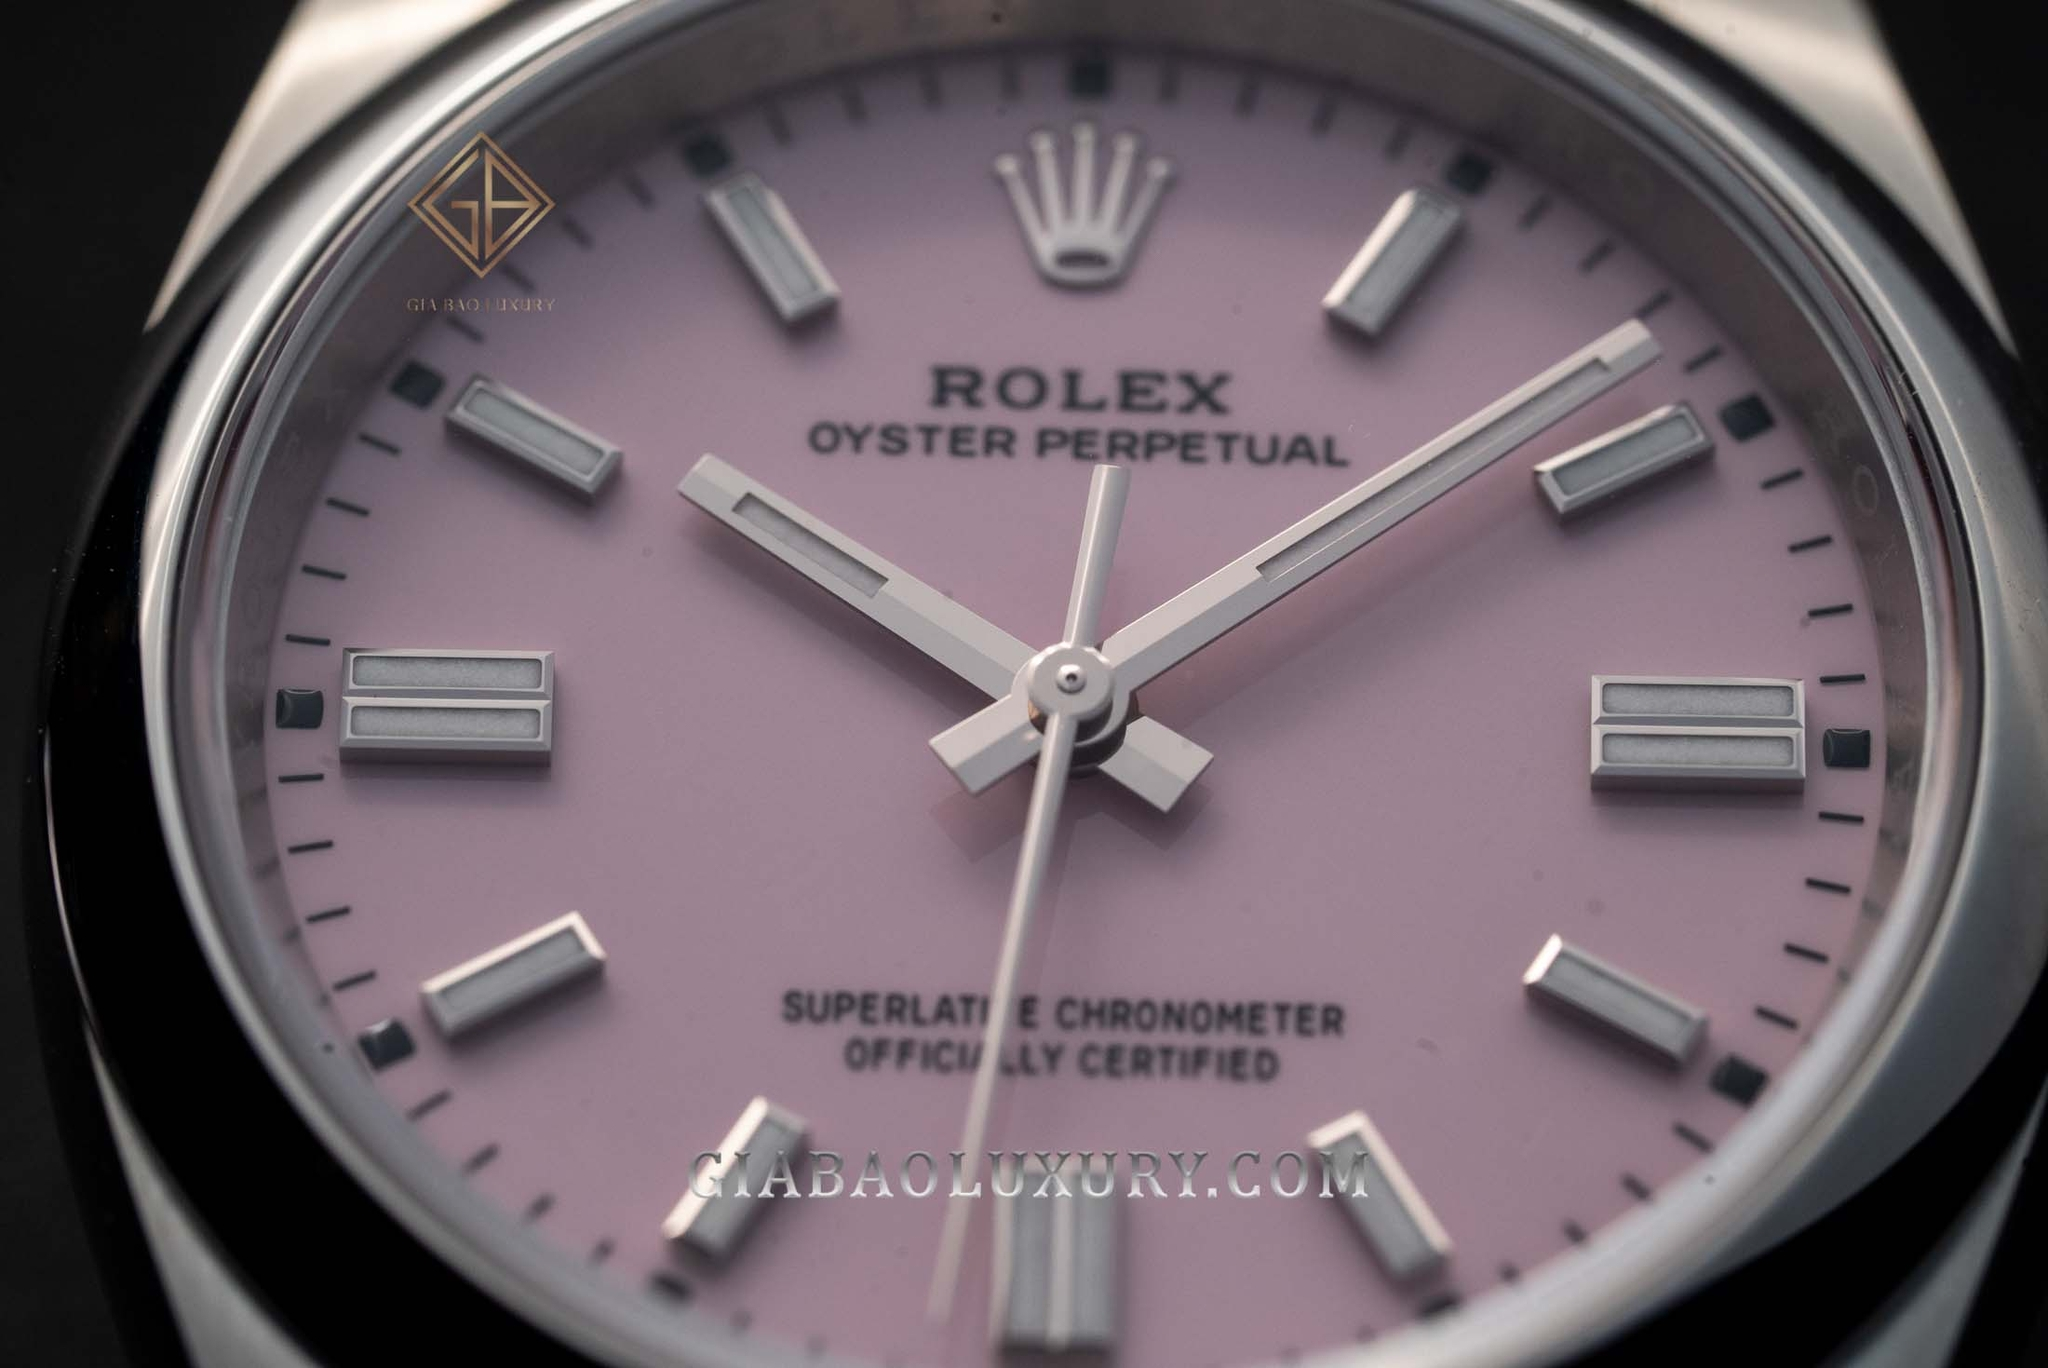 Đồng Hồ Rolex Oyster Perpetual 36 126000 Mặt Số Hồng Candy